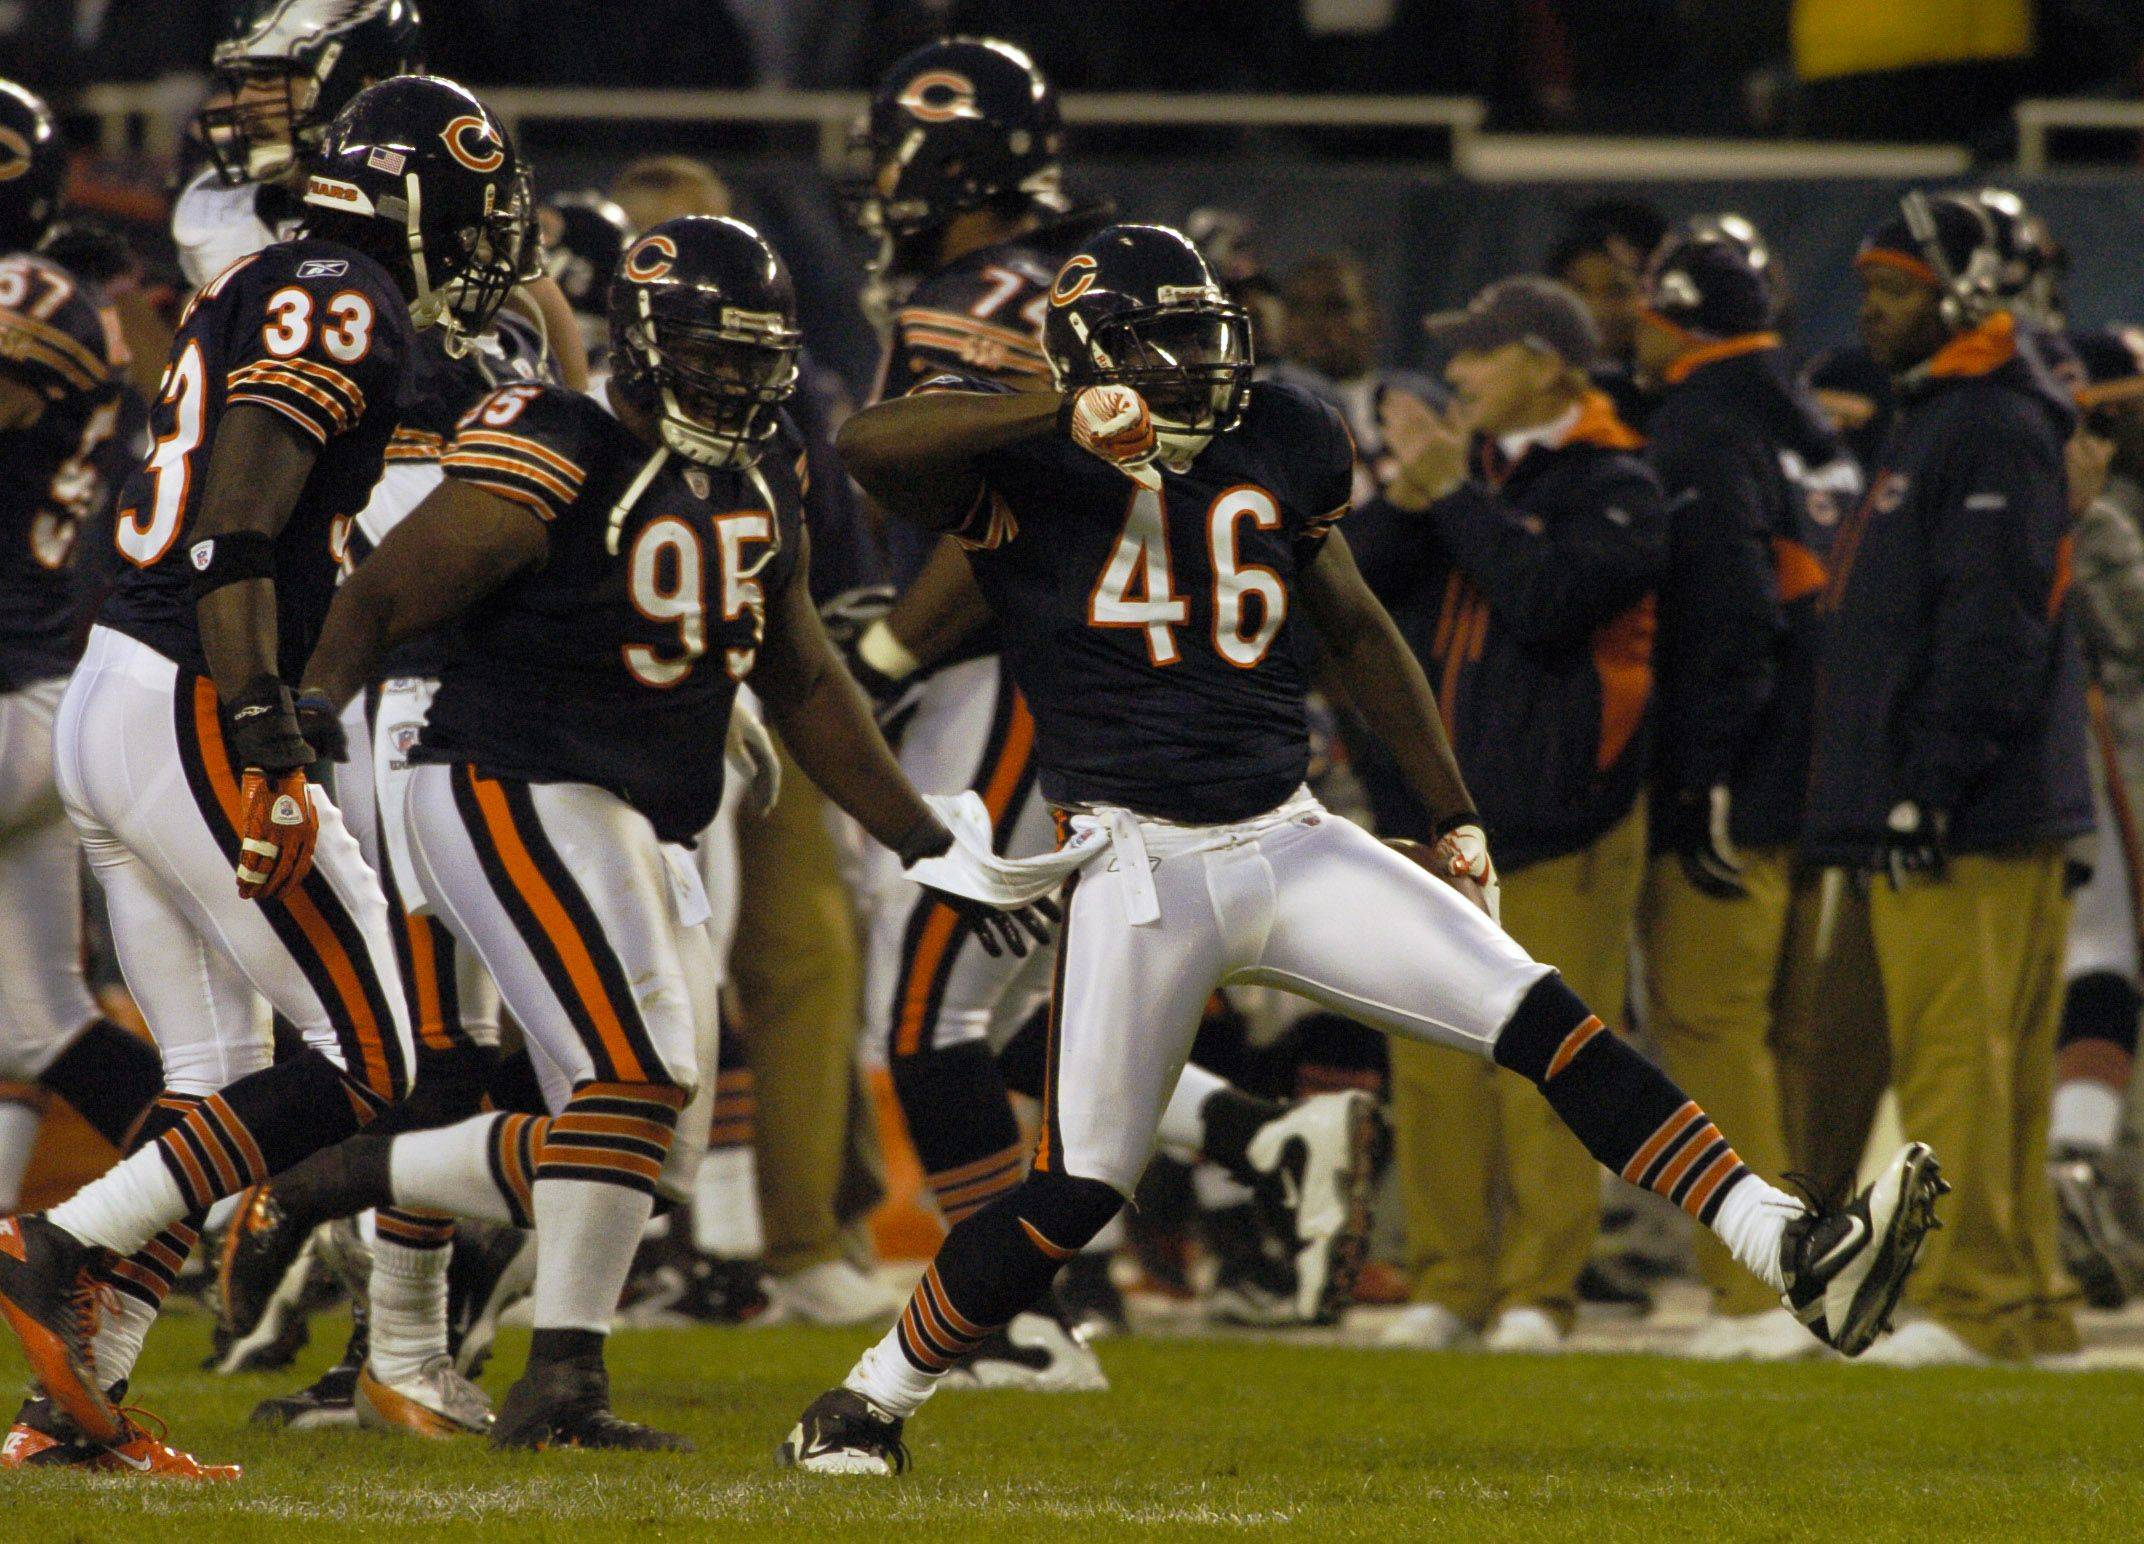 Bears safety Chris Harris (46) celebrates after intercepting a pass by Michael Vick during the second quarter Sunday at Soldier Field.